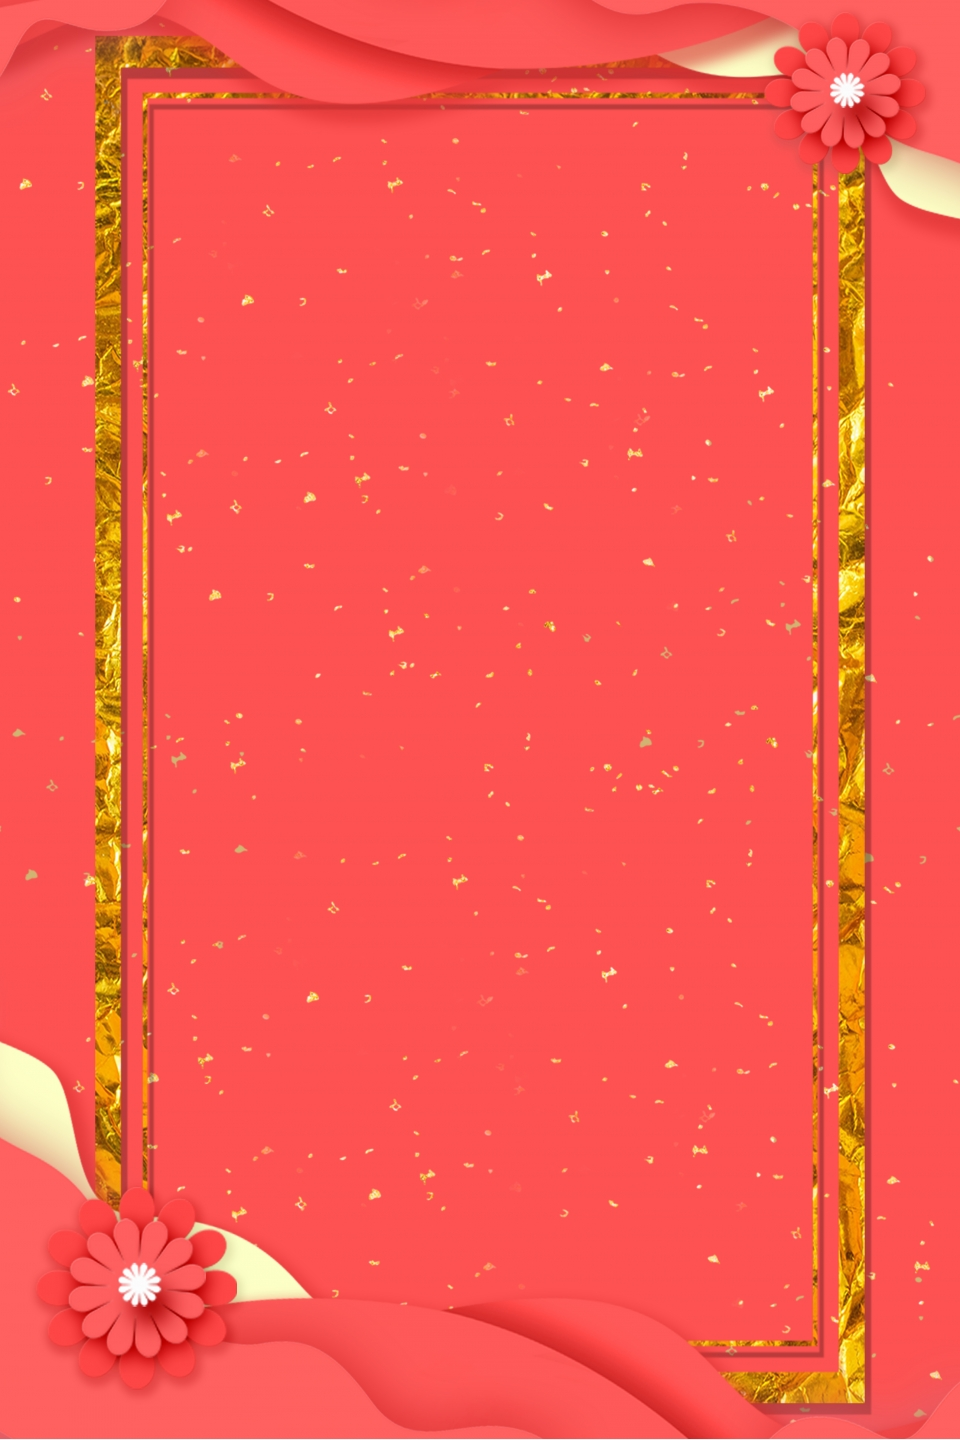 red wedding background with golden border gold fashion